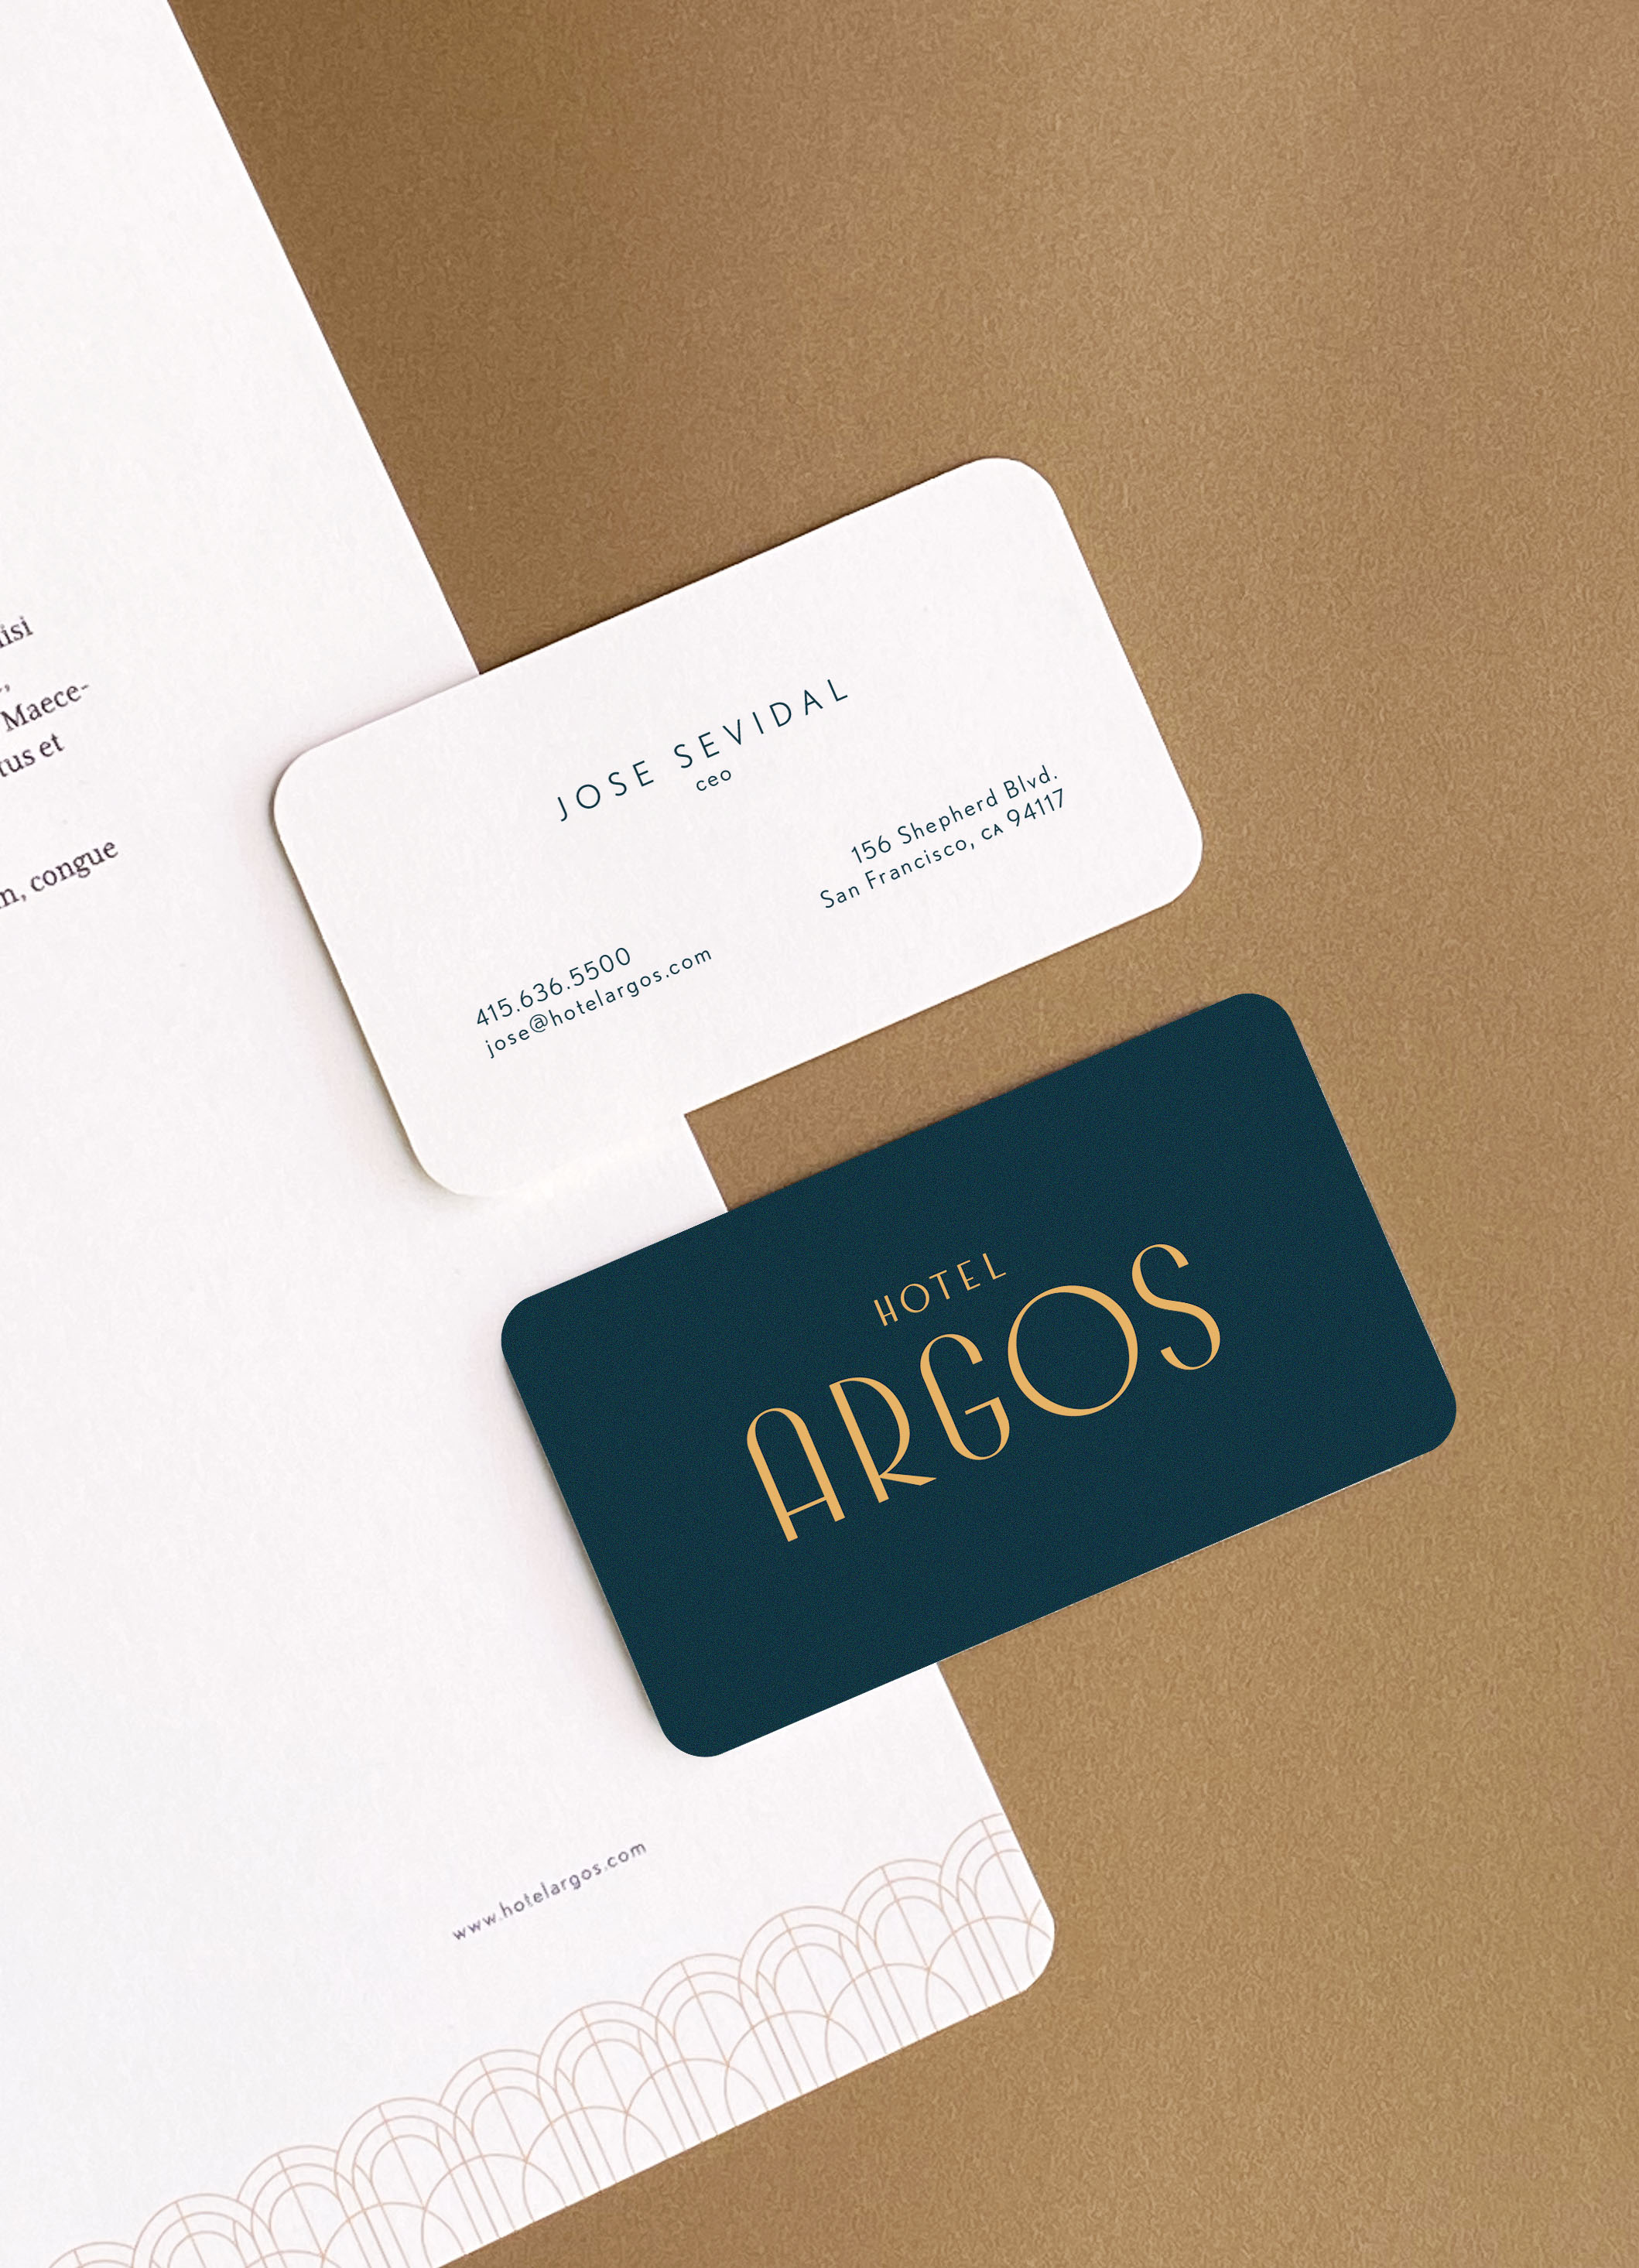 Two business cards and stationery for Hotel Argos.